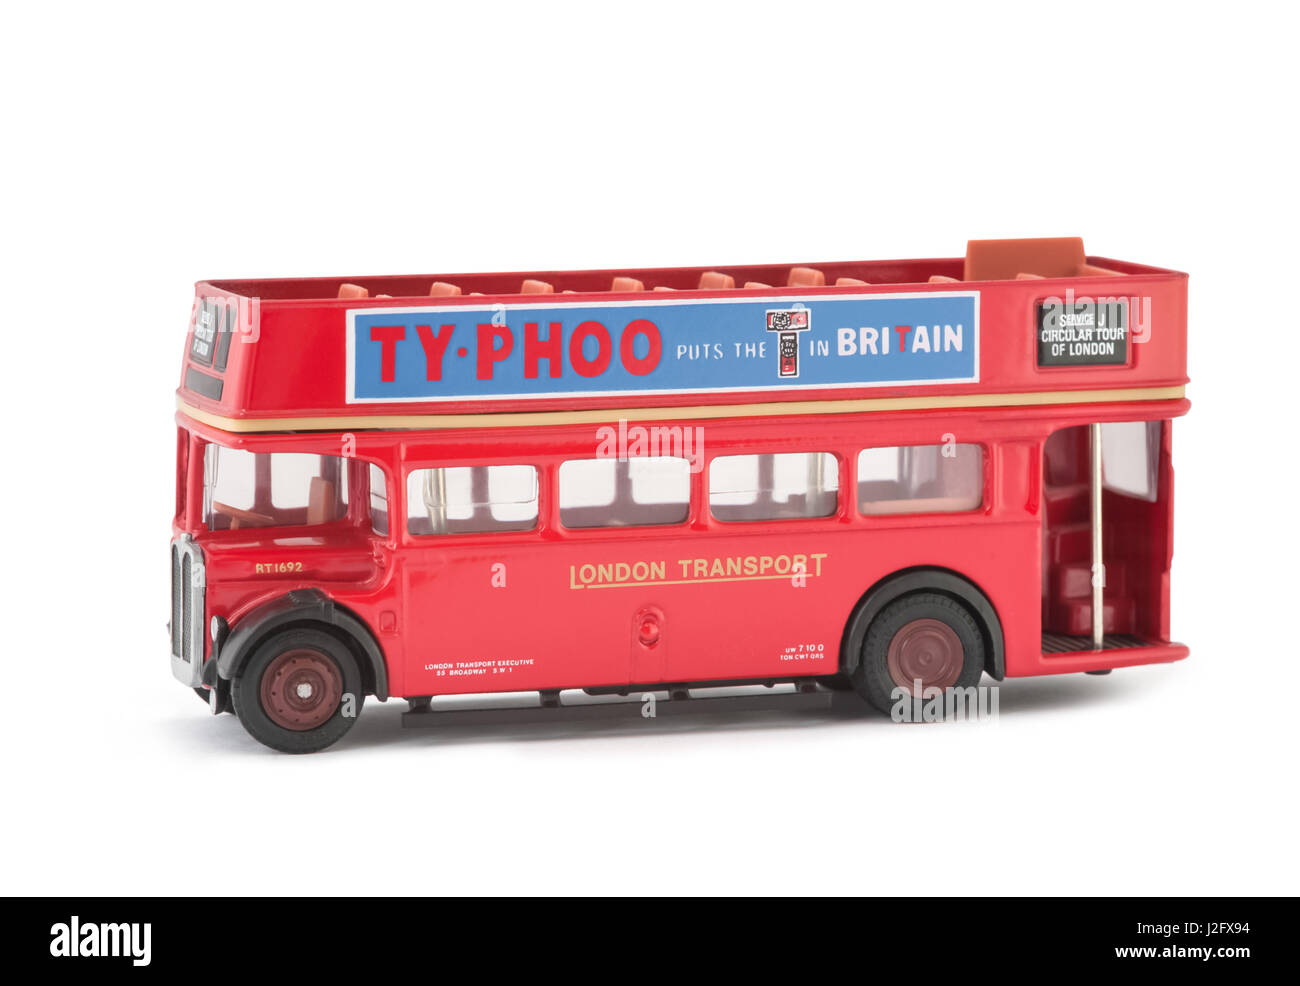 Miniature scale model of a vintage London City Tour open top sightseeing bus. The full size original was used for Stock Photo